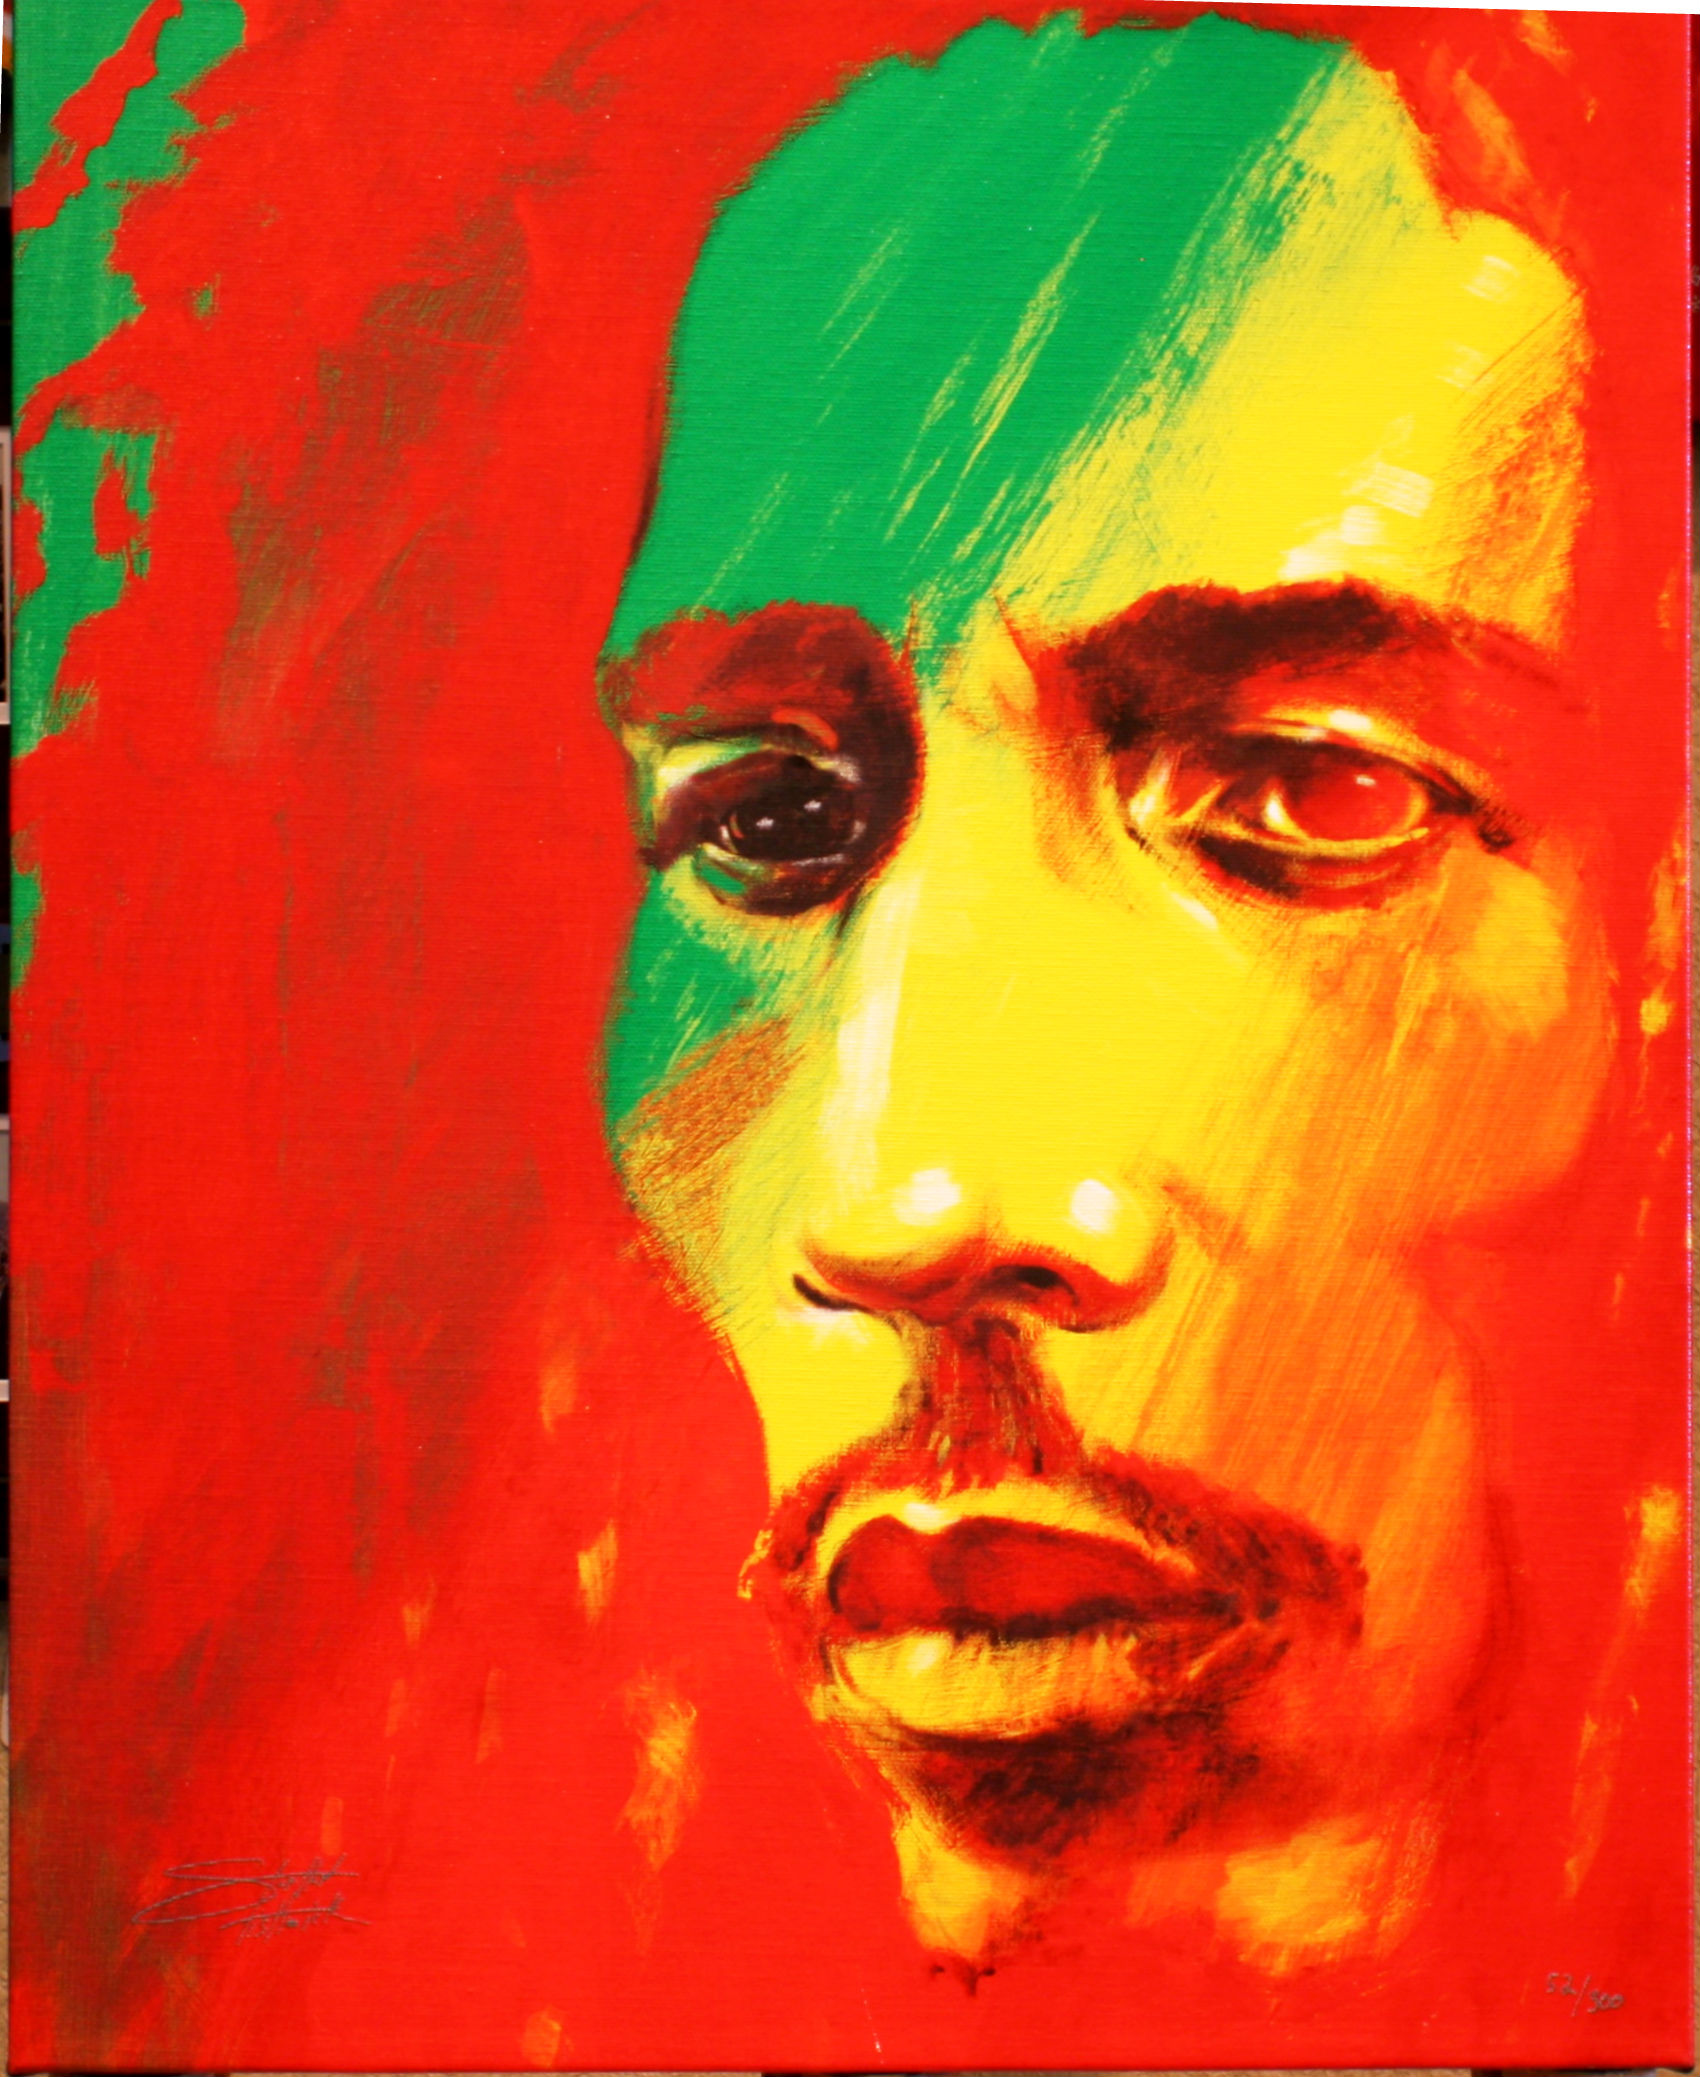 ART5: BOB MARLEY by STEPHEN FISWICK